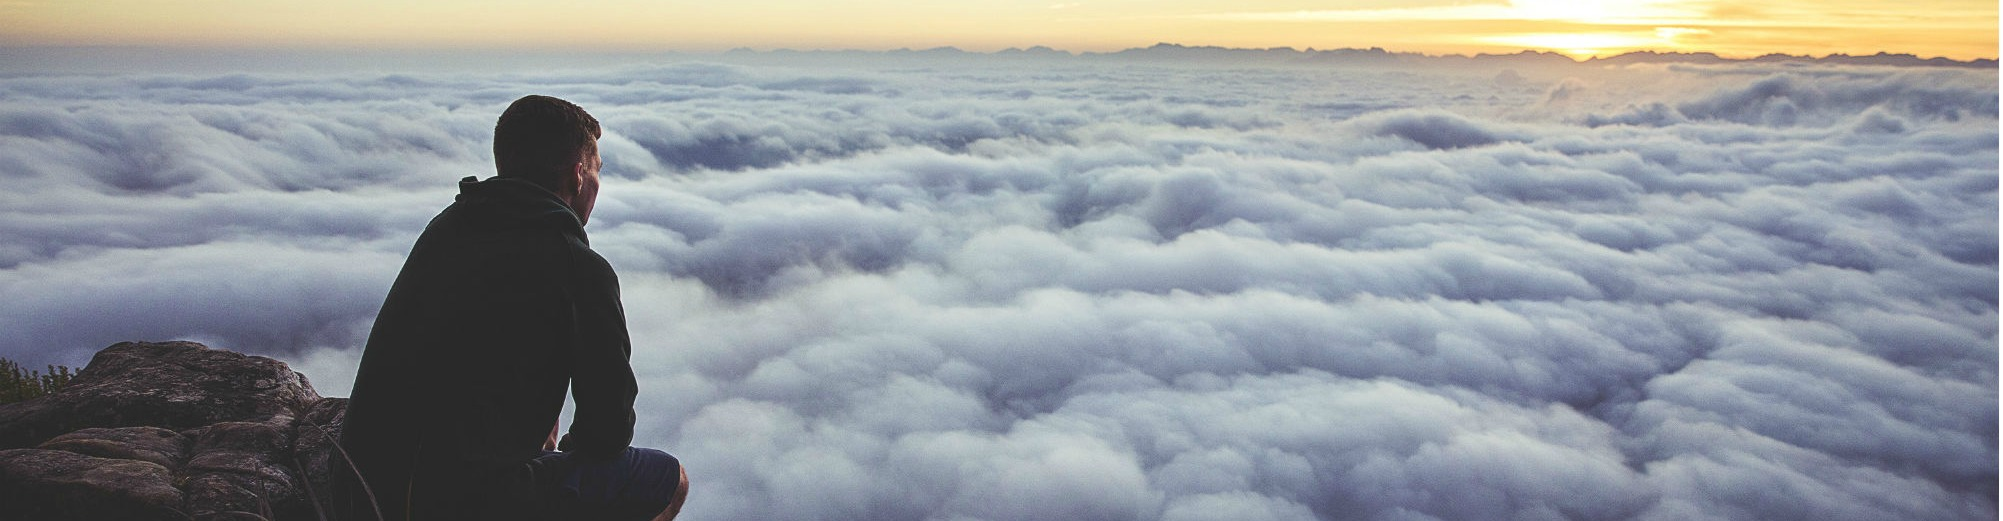 Innergravityrolfing in the clouds